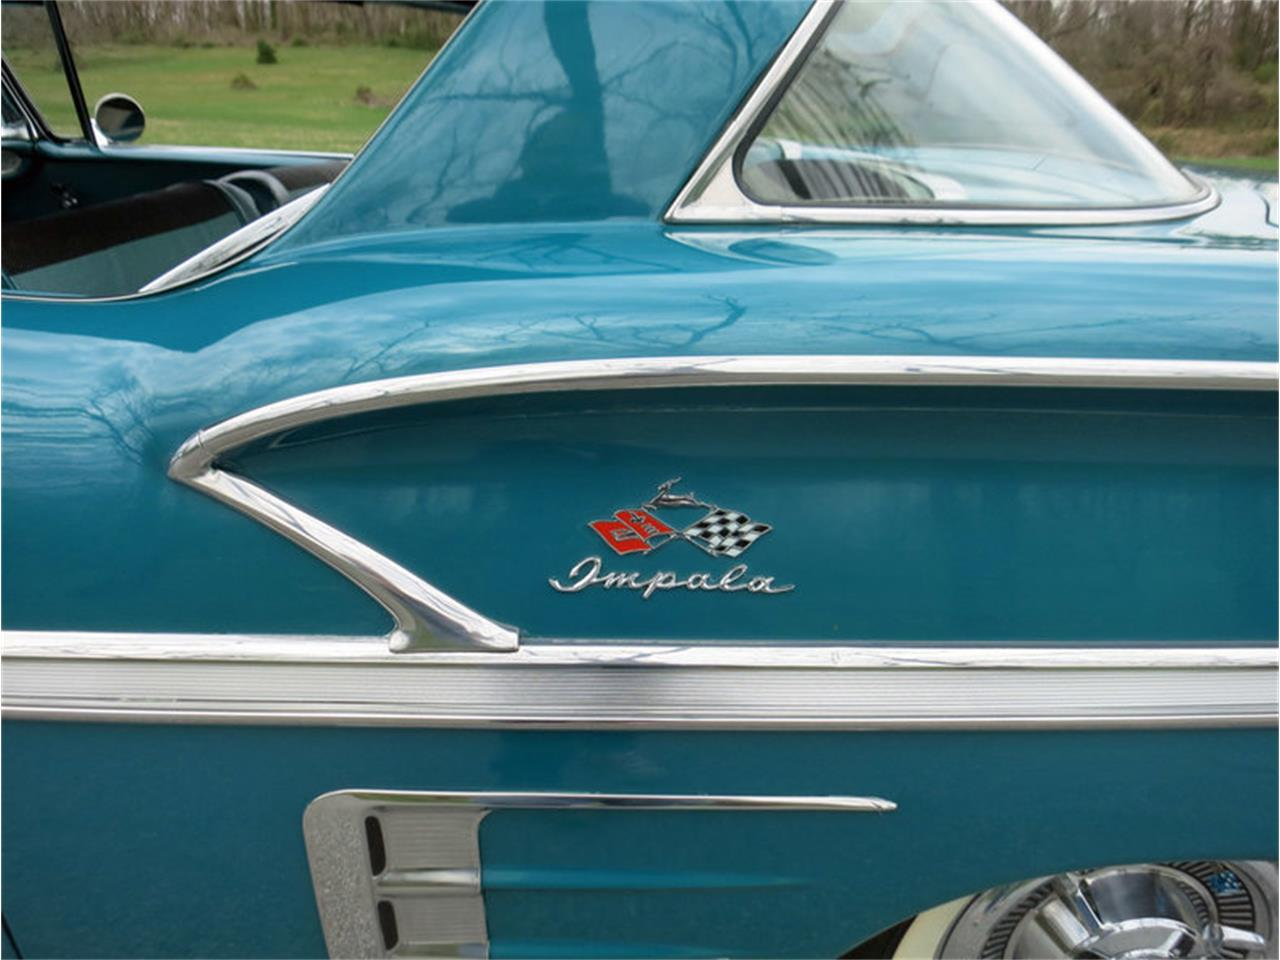 Large Picture of 1958 Chevrolet Impala located in Pennsylvania - $45,000.00 Offered by Connors Motorcar Company - LRM8